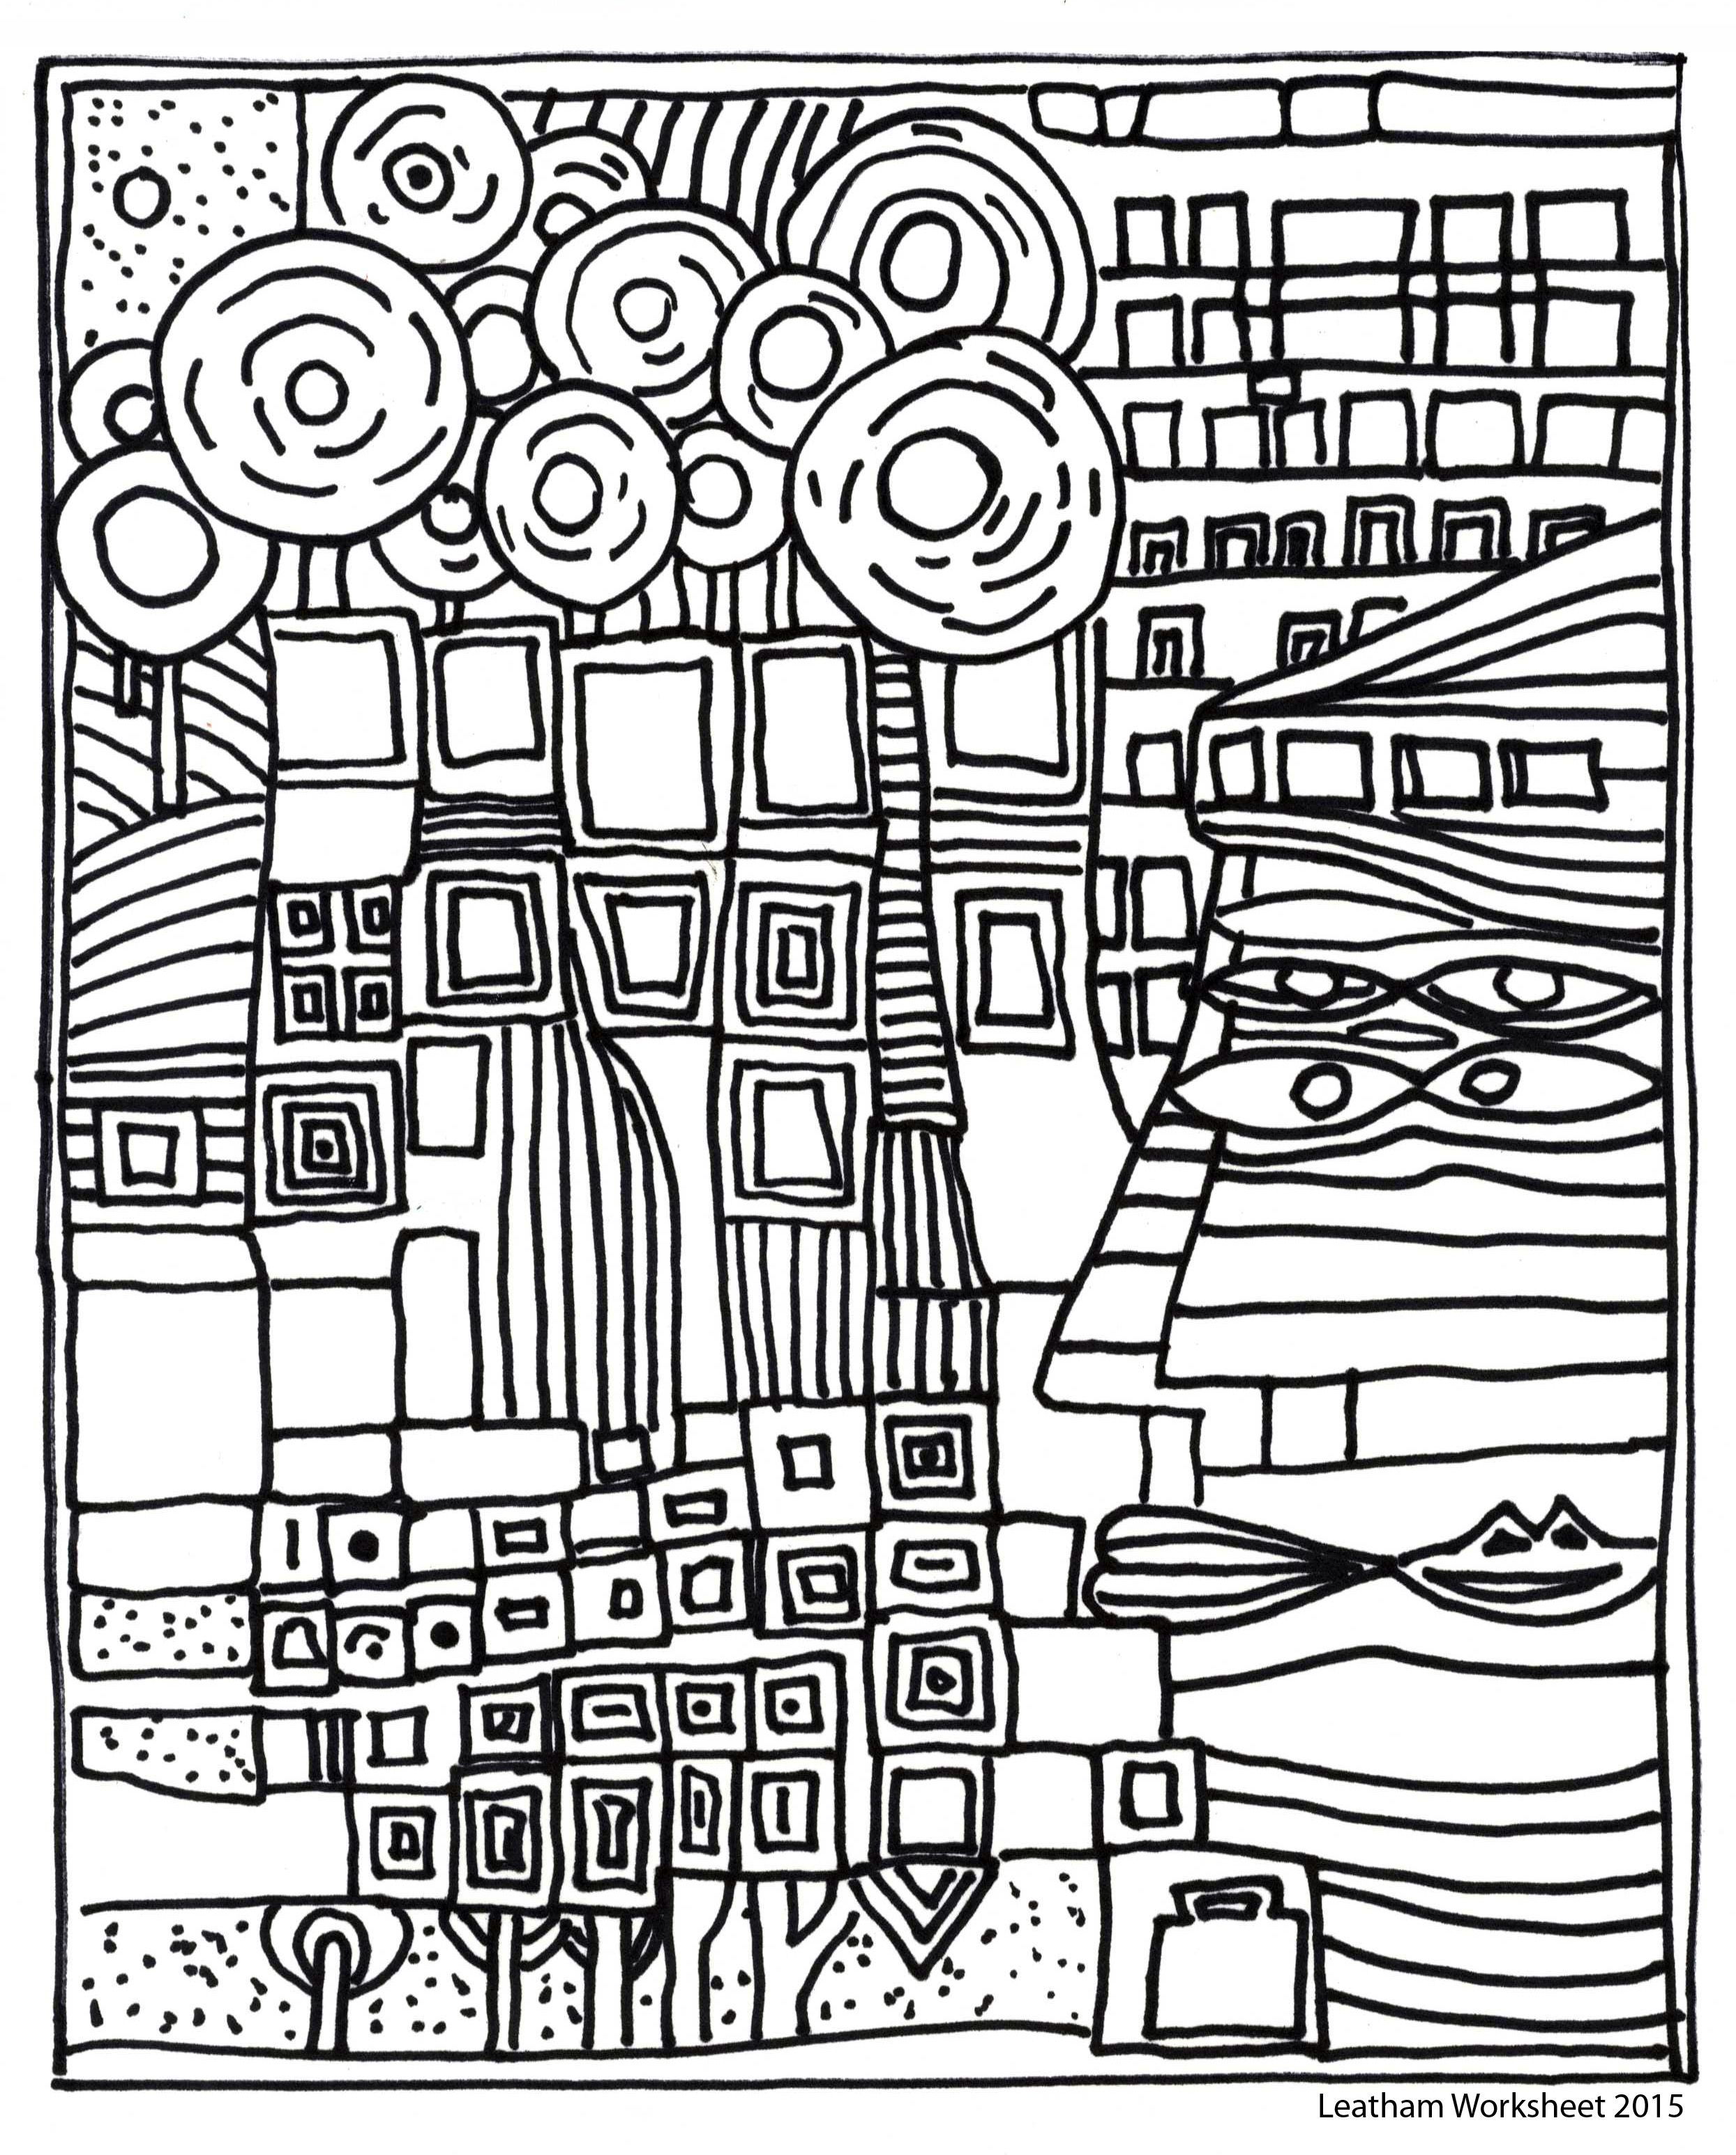 Hundertwasser Style line art Feel free to use it